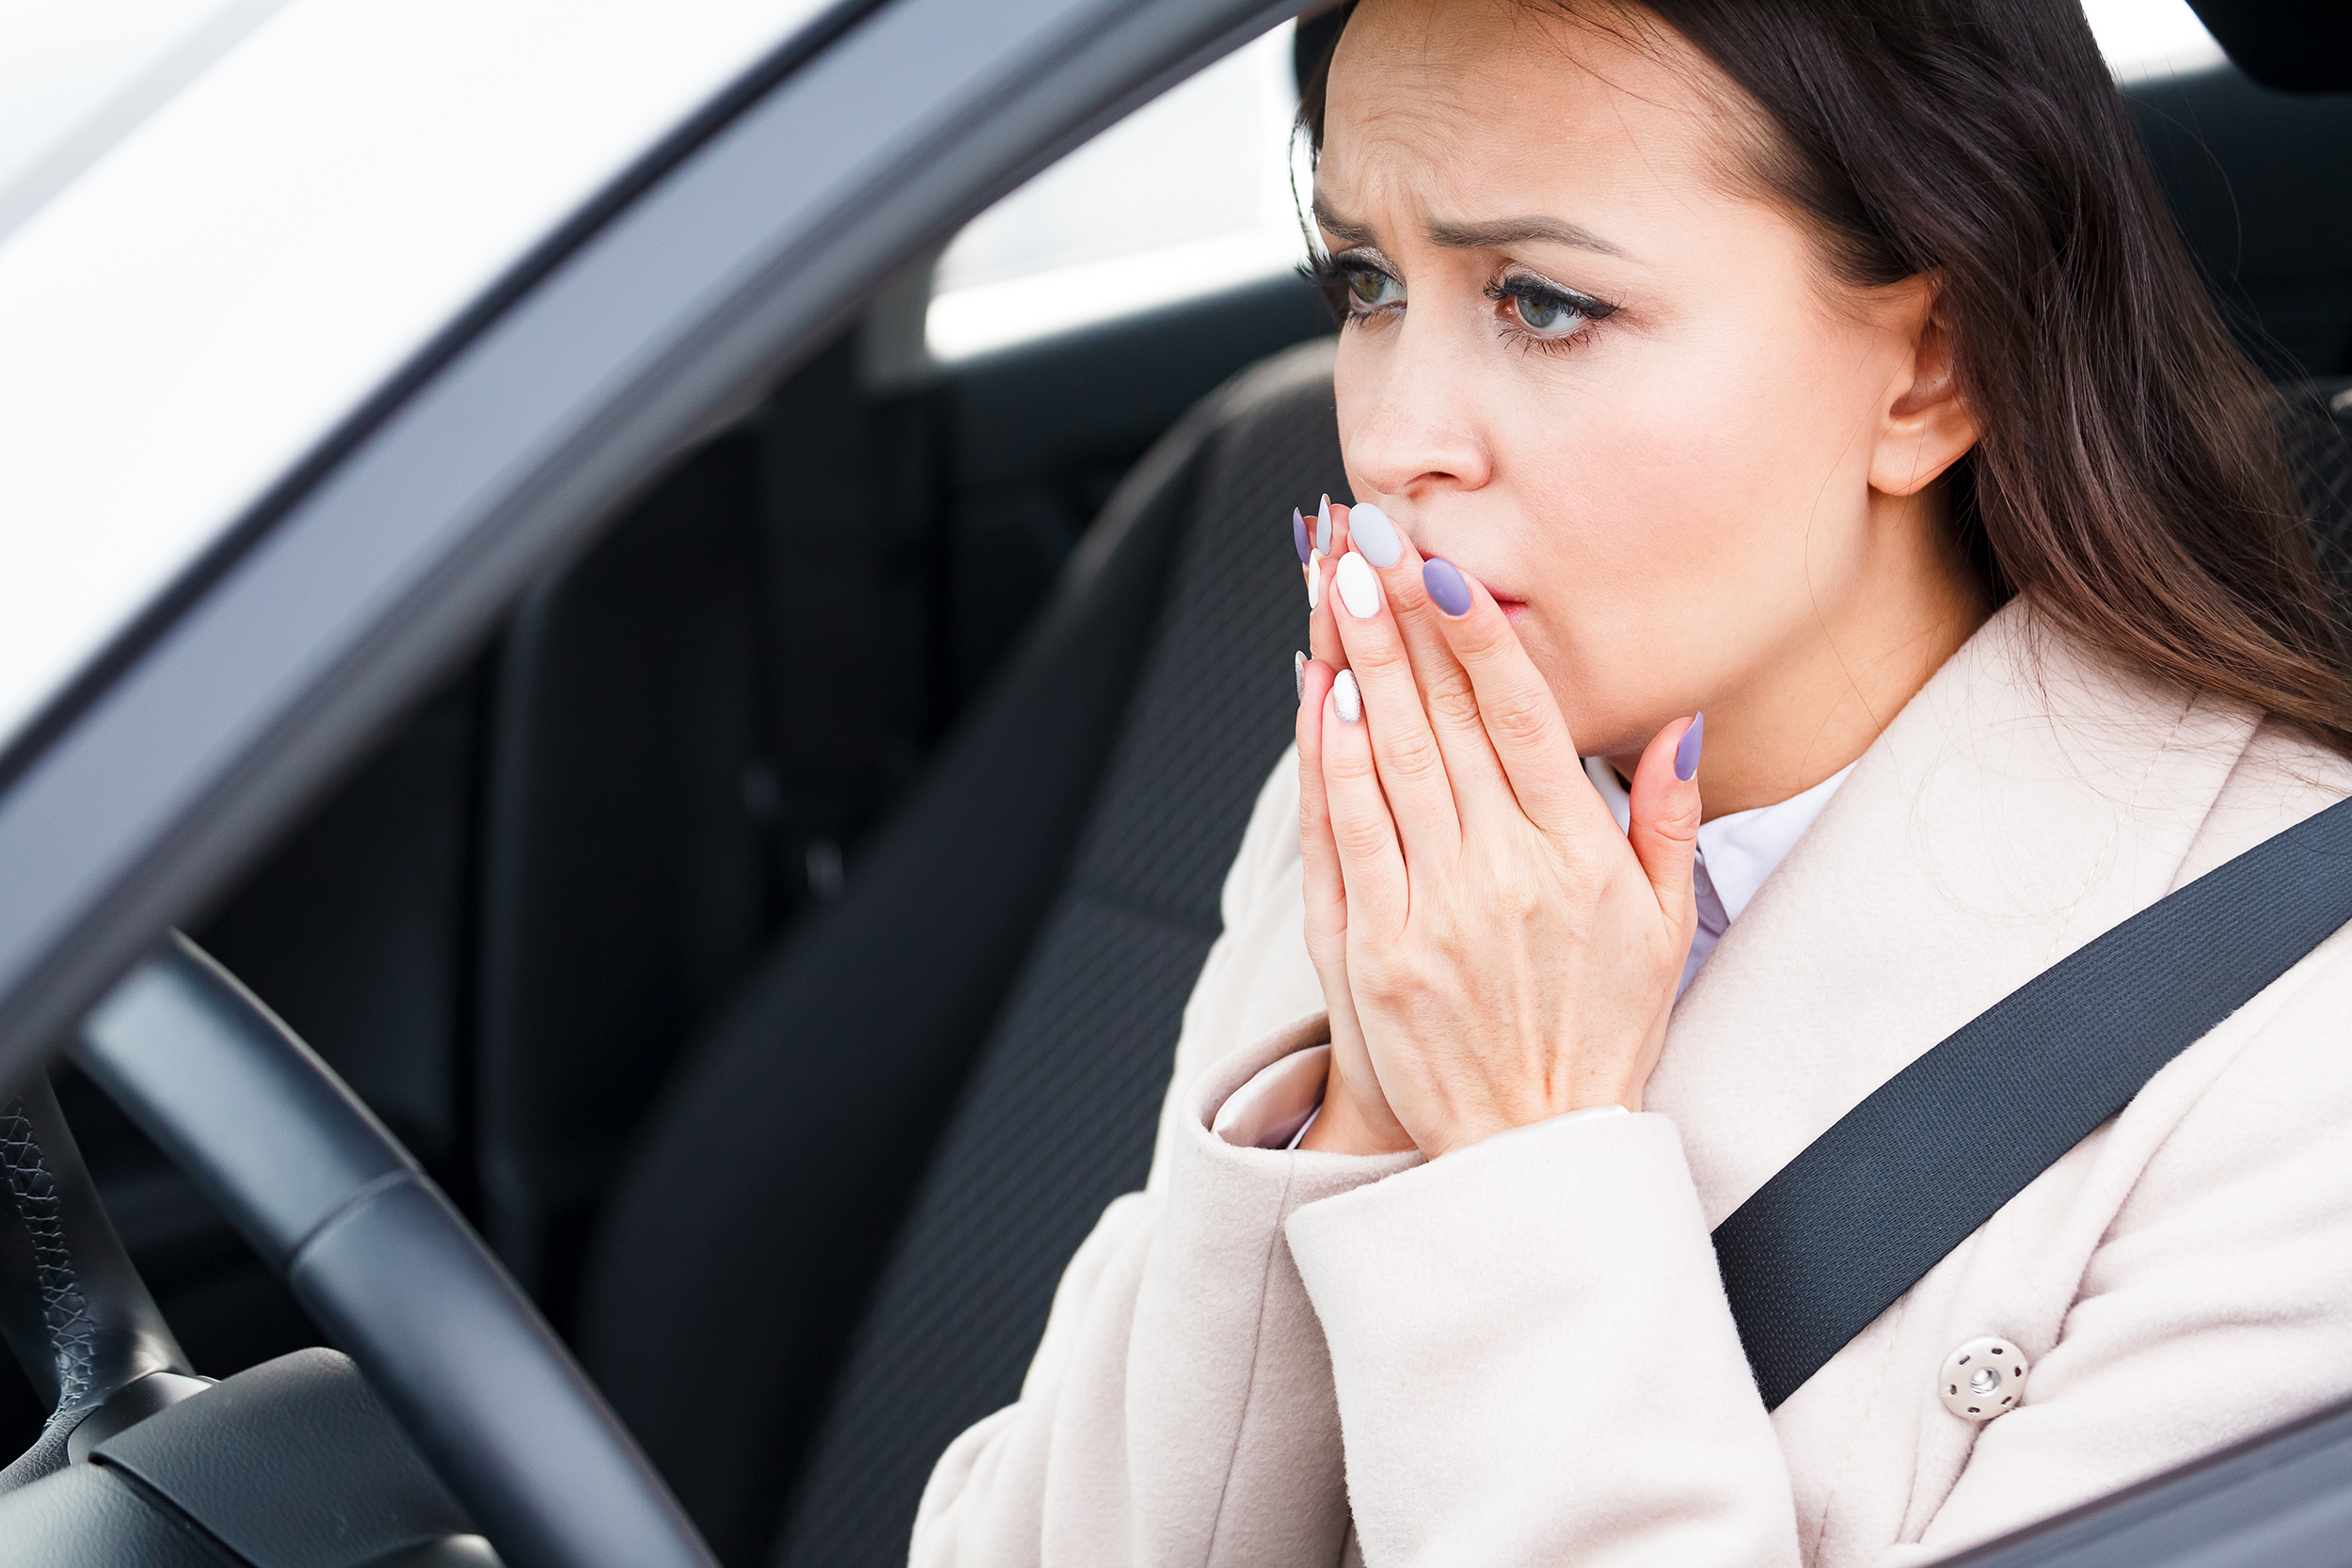 fear of driving is common